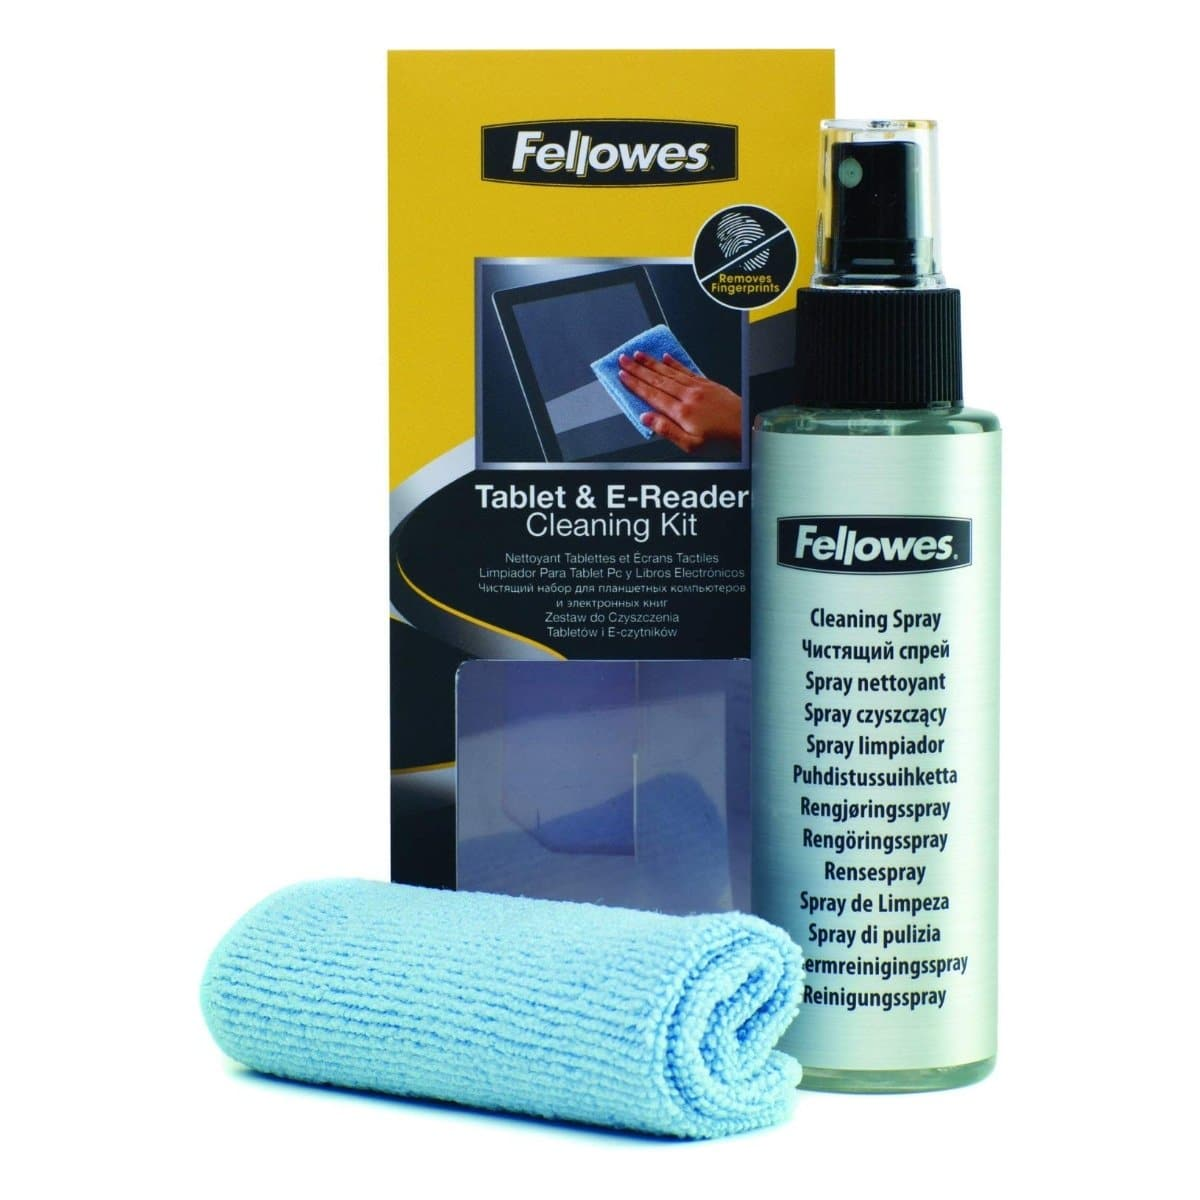 Fellowes Tablet & E-Reader Cleaning Kit